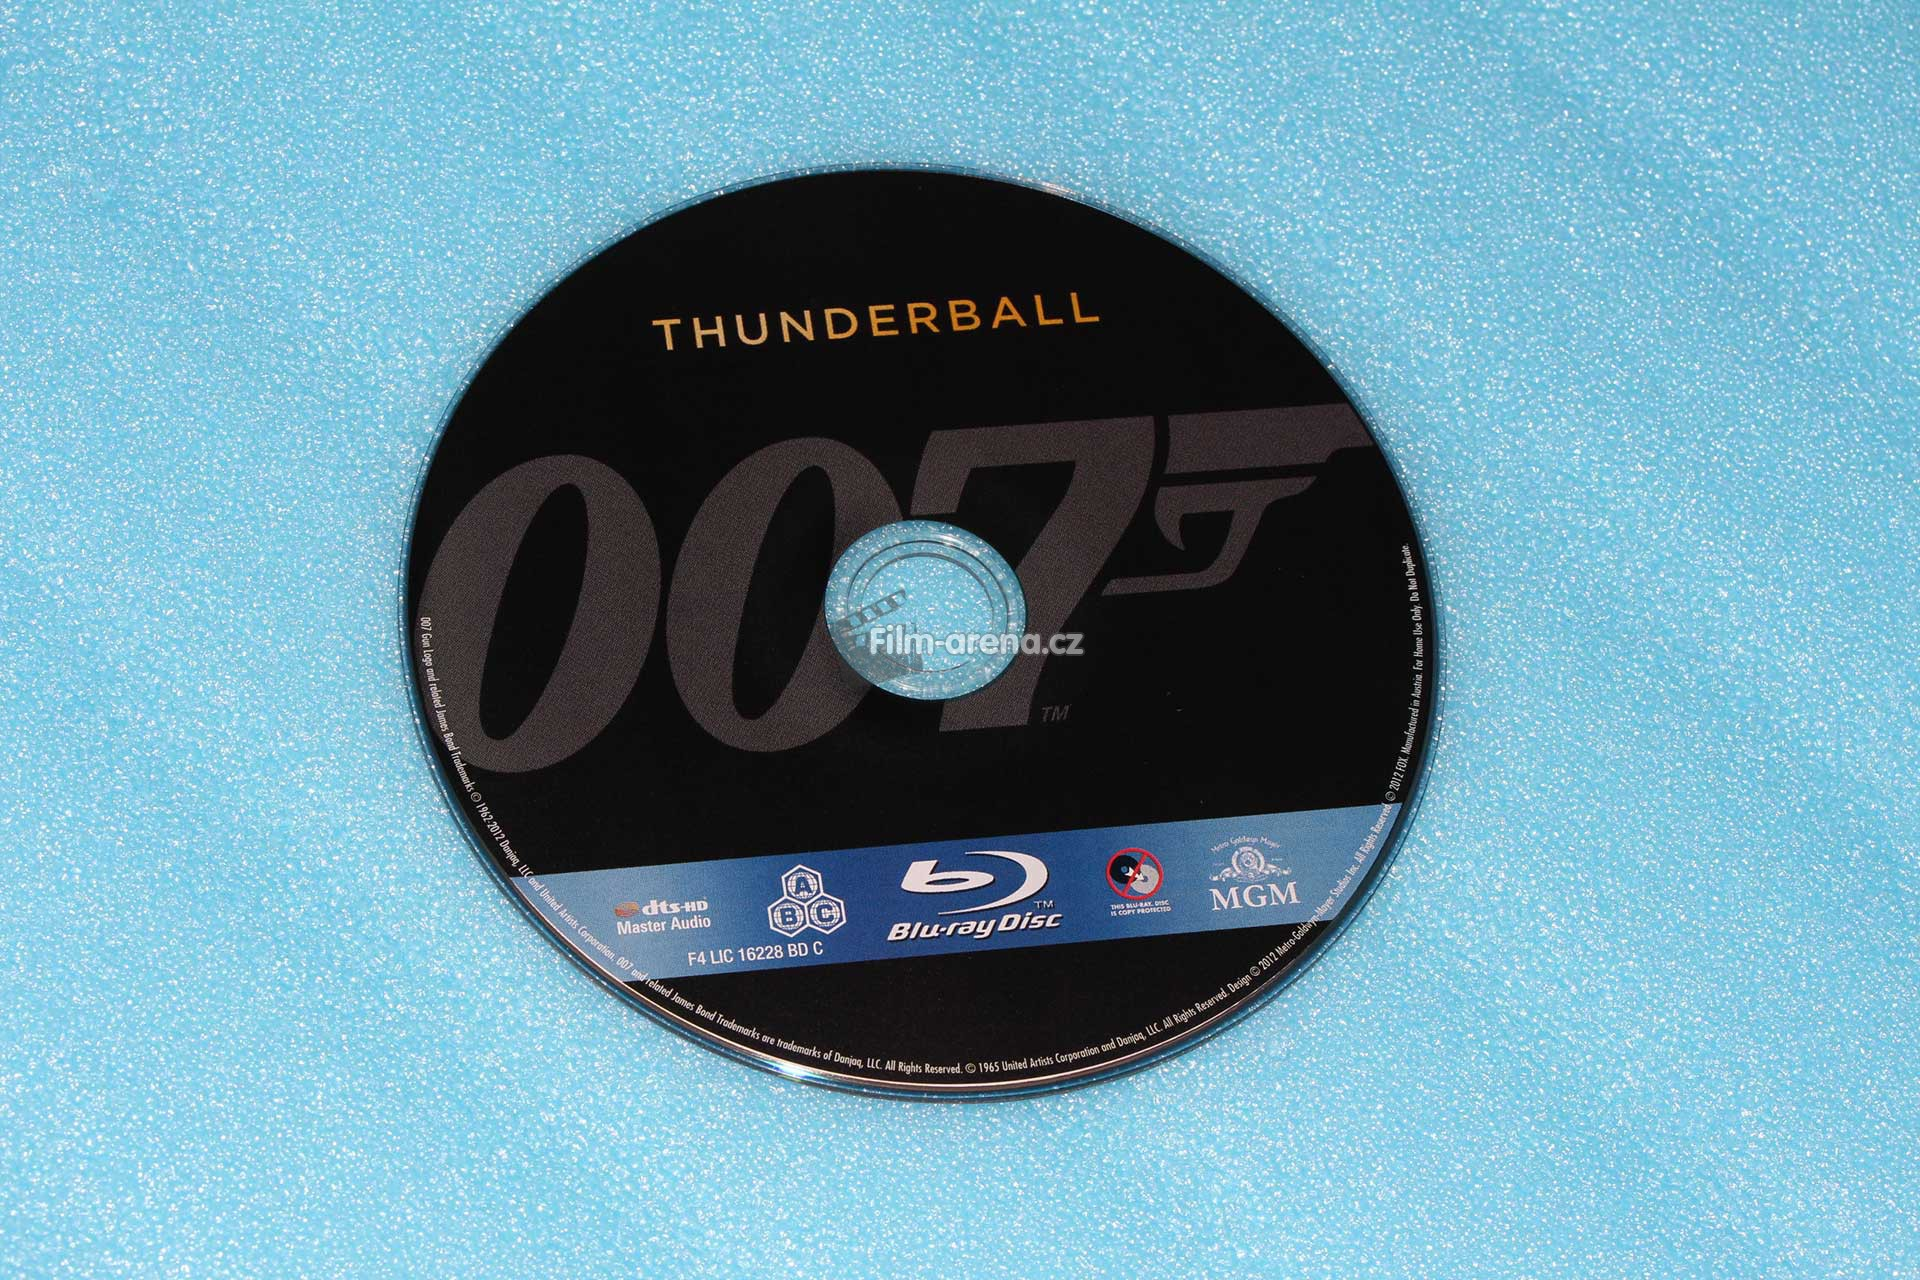 http://www.filmarena.cz/upload/images/nazivo/James_Bond/1965_Thunderball/1965_thunderball_06.jpg